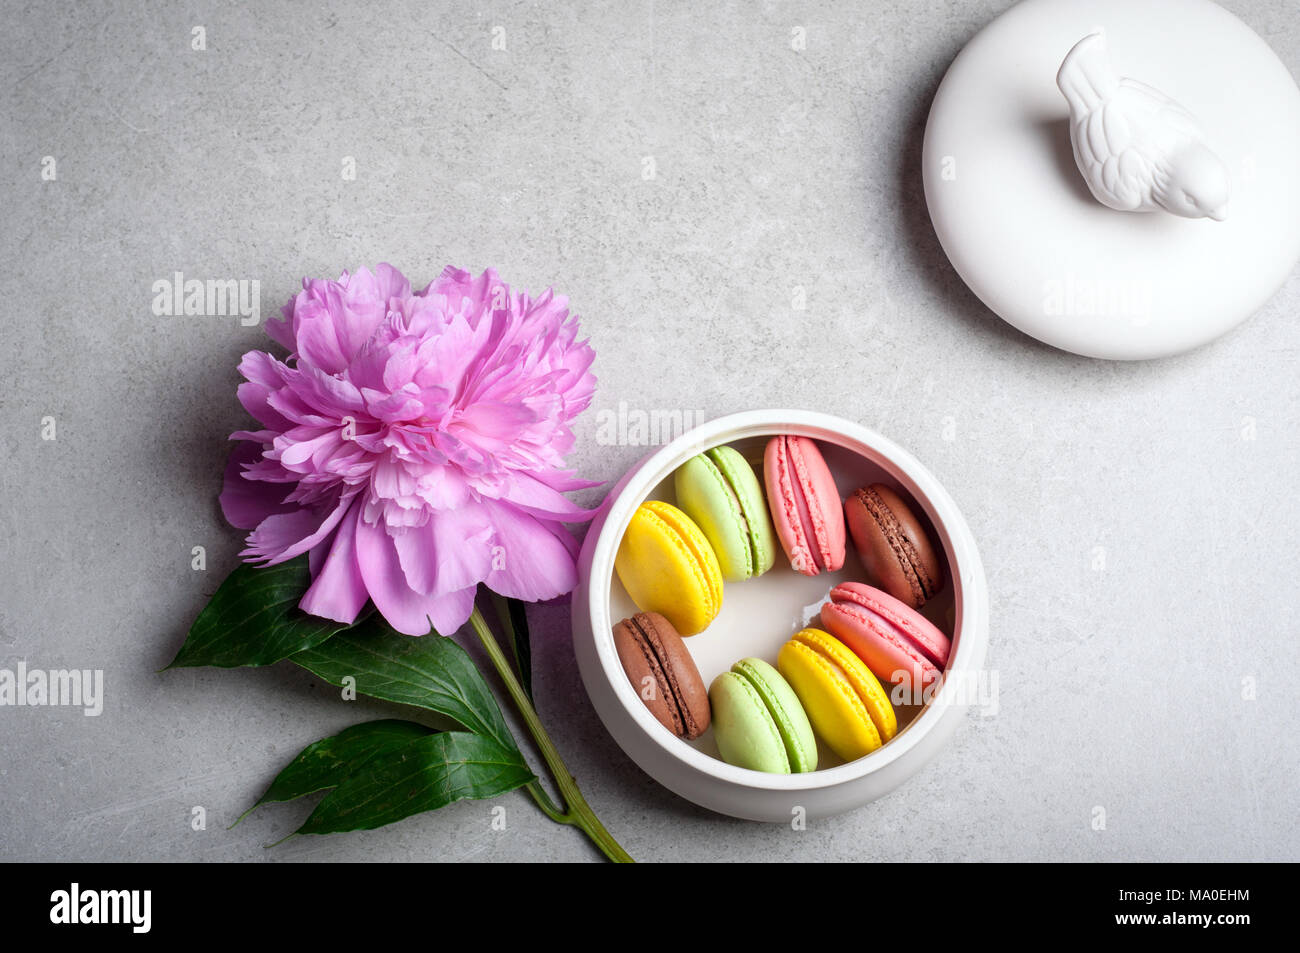 Flower peony, macaroons on grey background. Happy birthday, annivarsary, valentine holidays concept - Stock Image